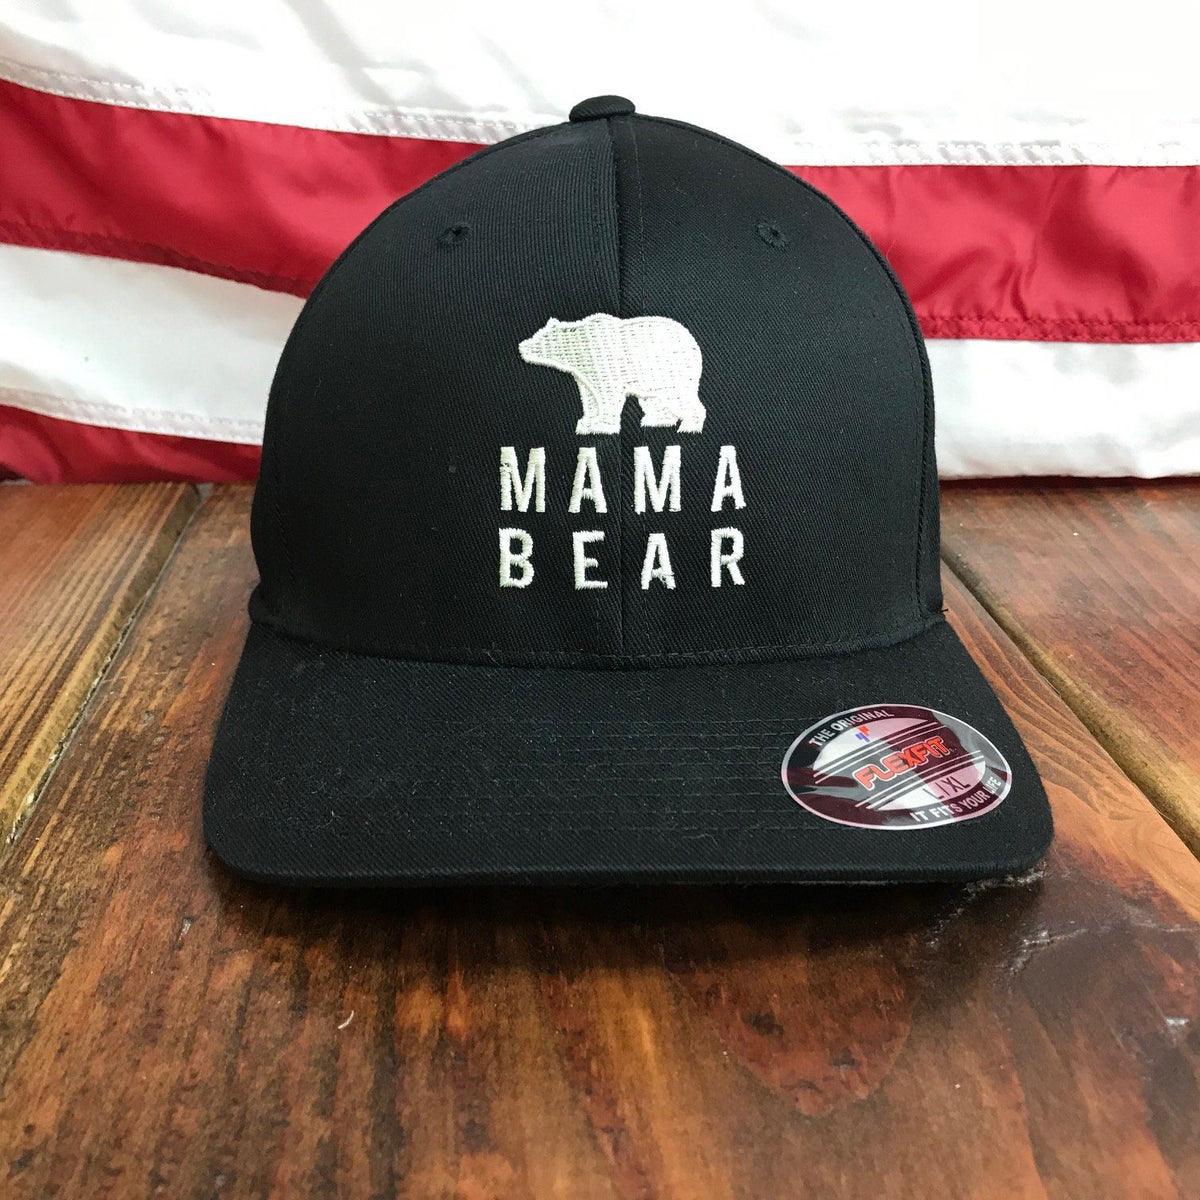 Mama Bear Flexfit Hat